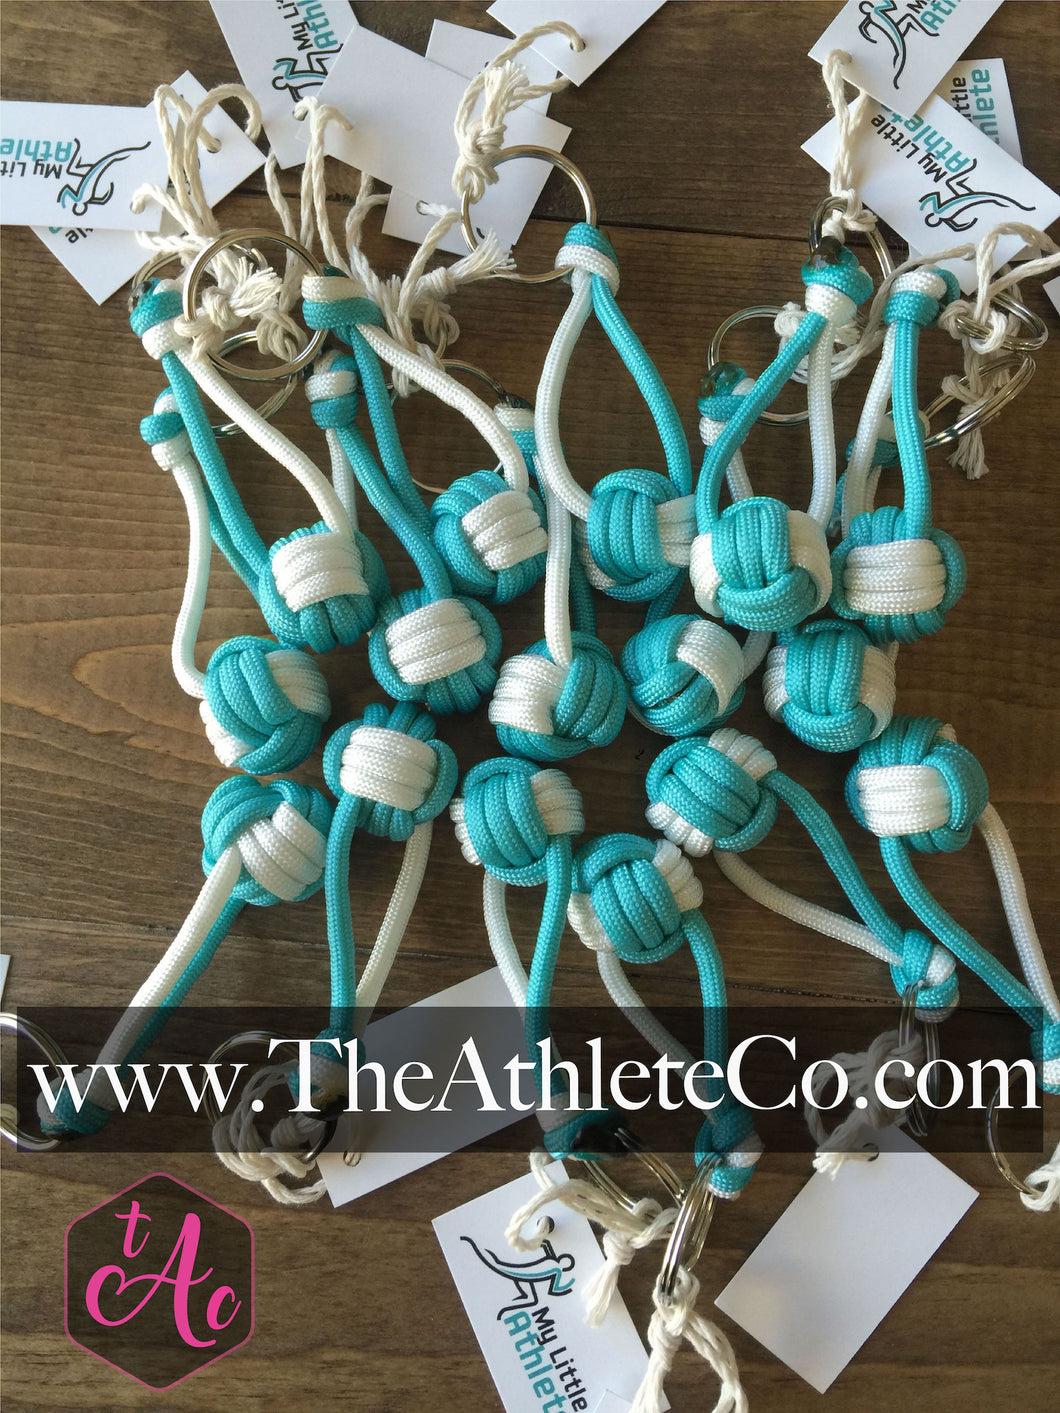 teal volleyball paracord keychains